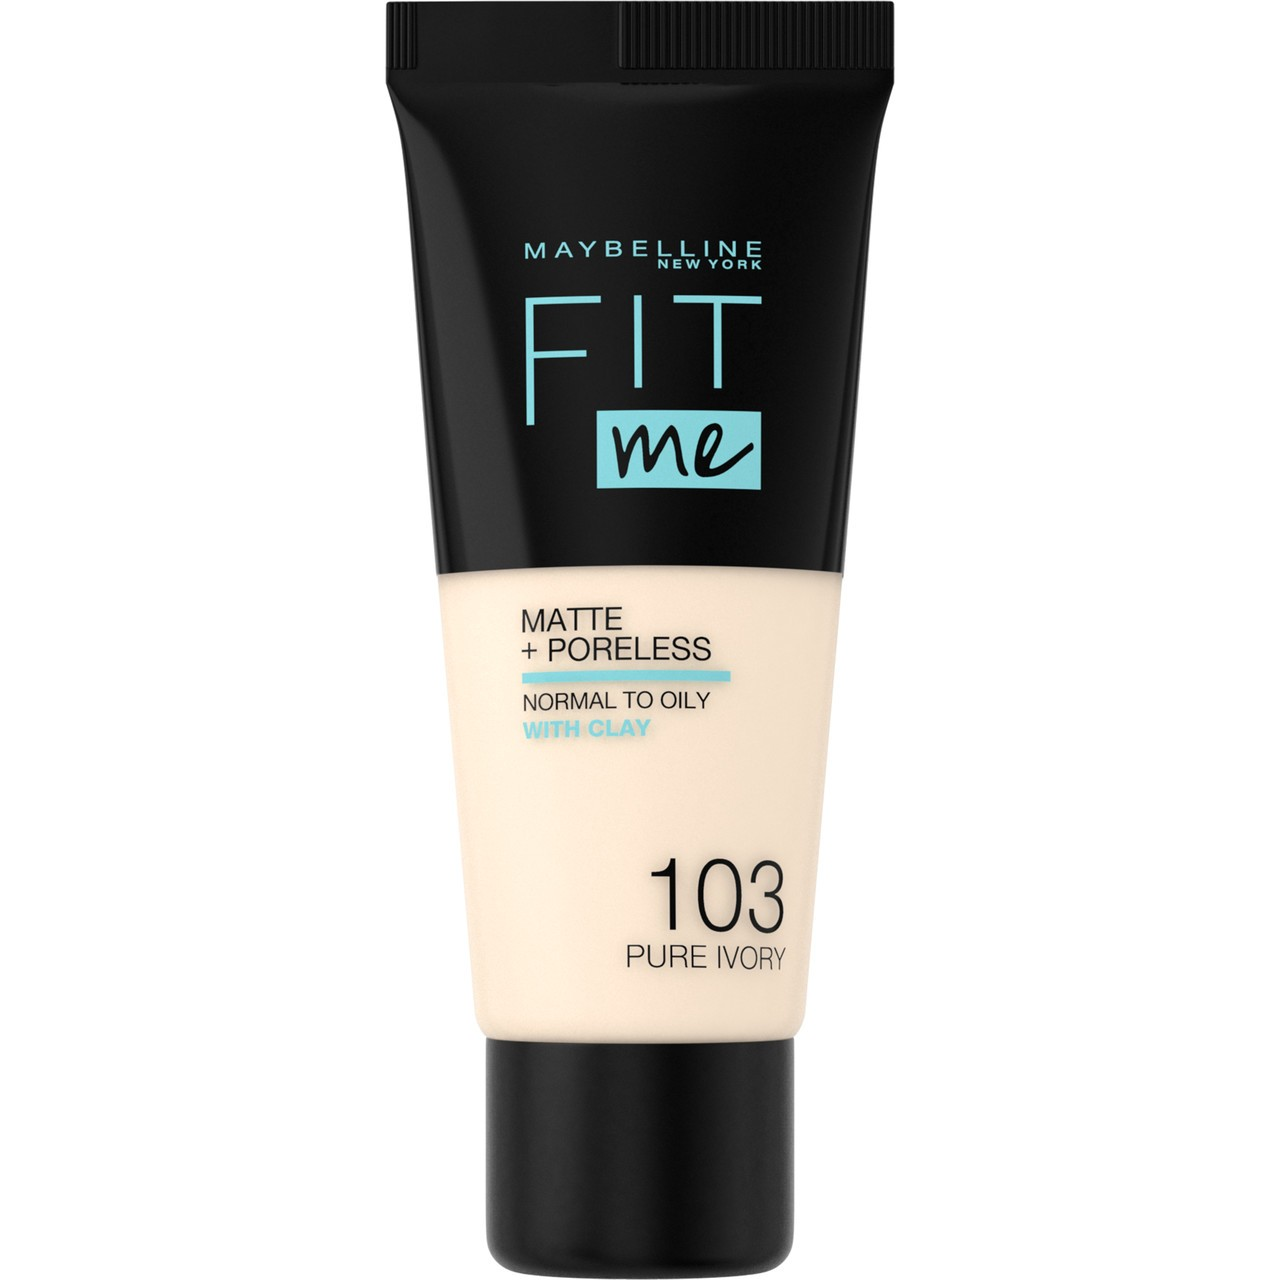 Maybelline - Base Liquida Fit Me Matte & Poreless -  103 - Pure Ivory